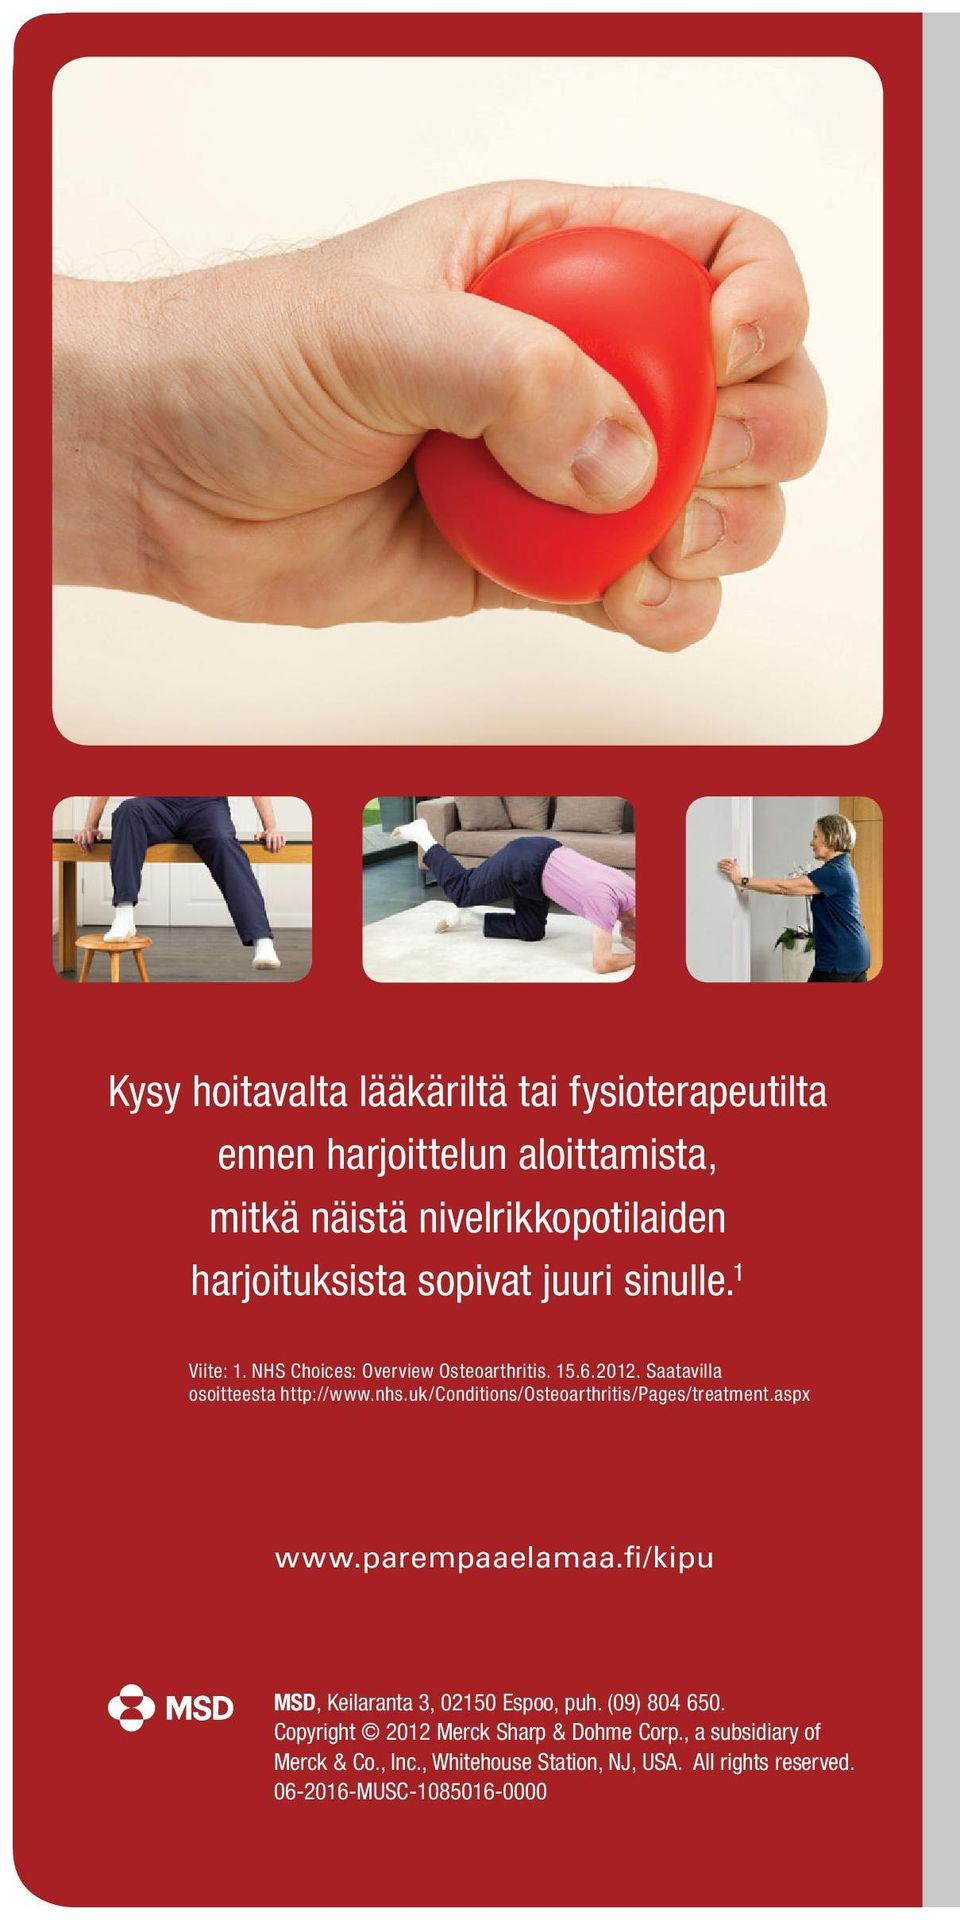 uk/conditions/osteoarthritis/pages/treatment.aspx www.parempaaelamaa.fi/kipu MSD, Keilaranta 3, 02150 Espoo, puh. (09) 804 650.